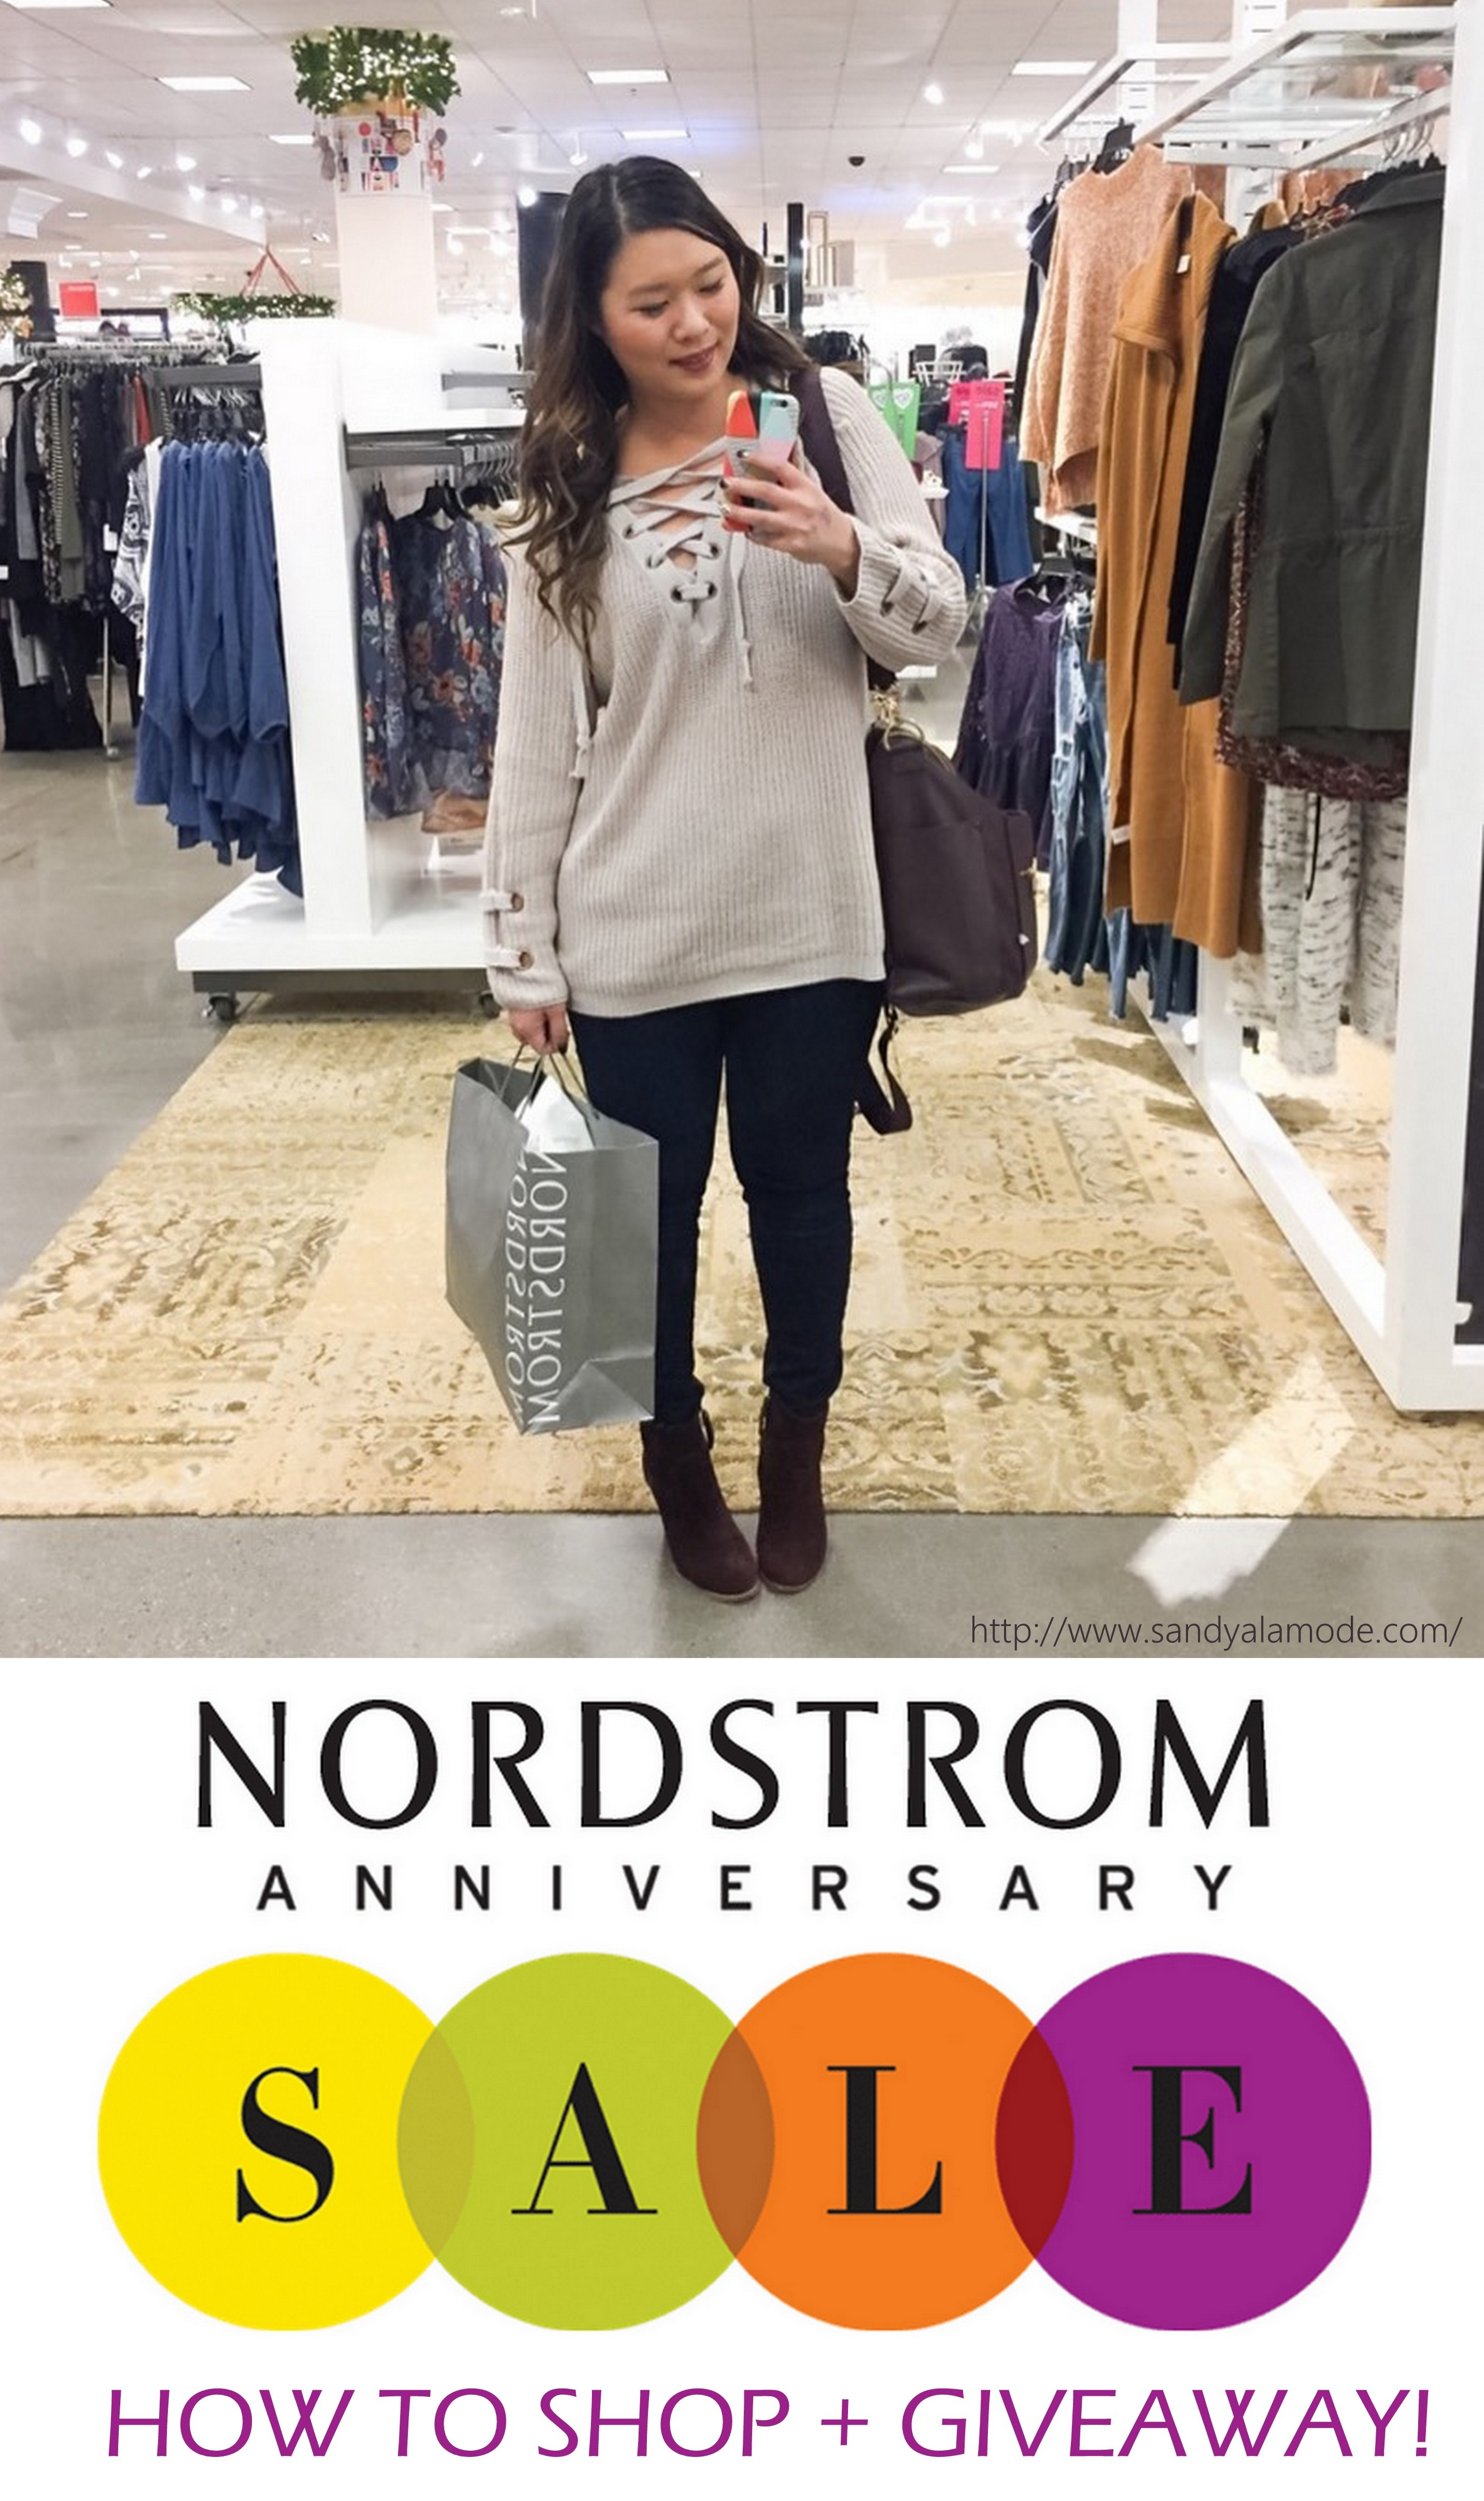 Get Ready for the Nordstrom Anniversary Sale + GIVEAWAY by Utah blogger Sandy A La Mode